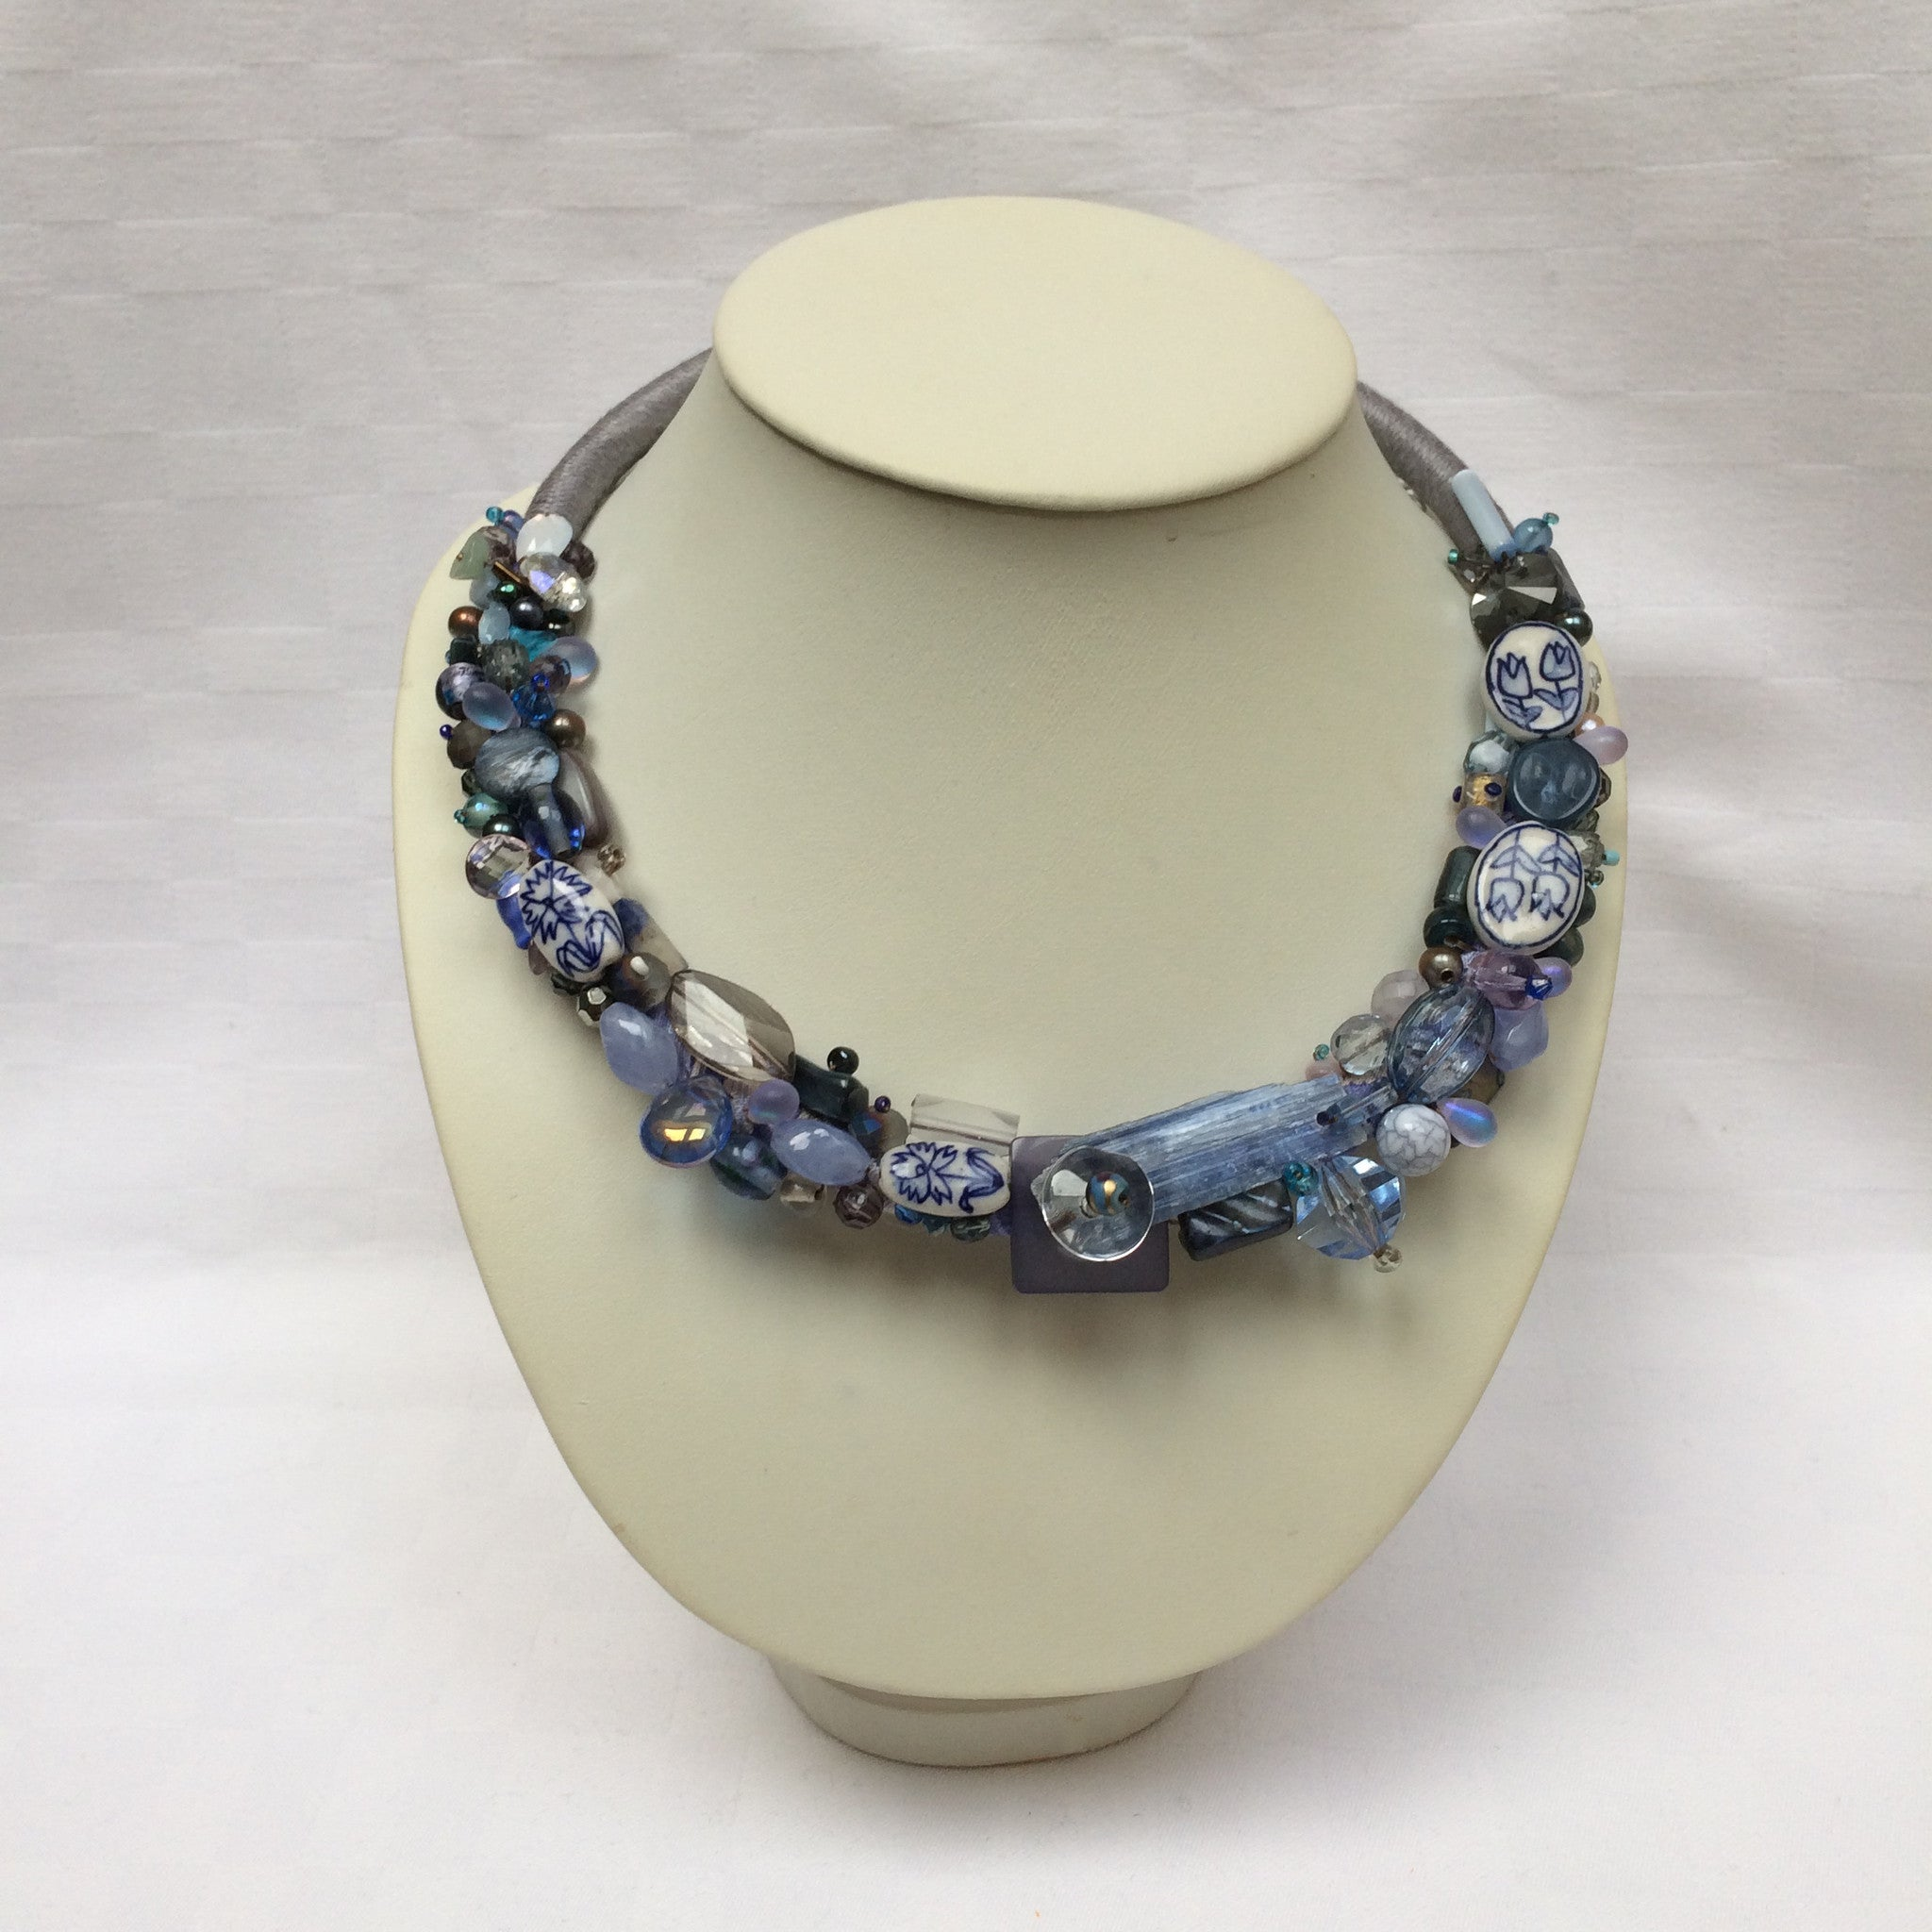 Grey-Blue Collar necklace